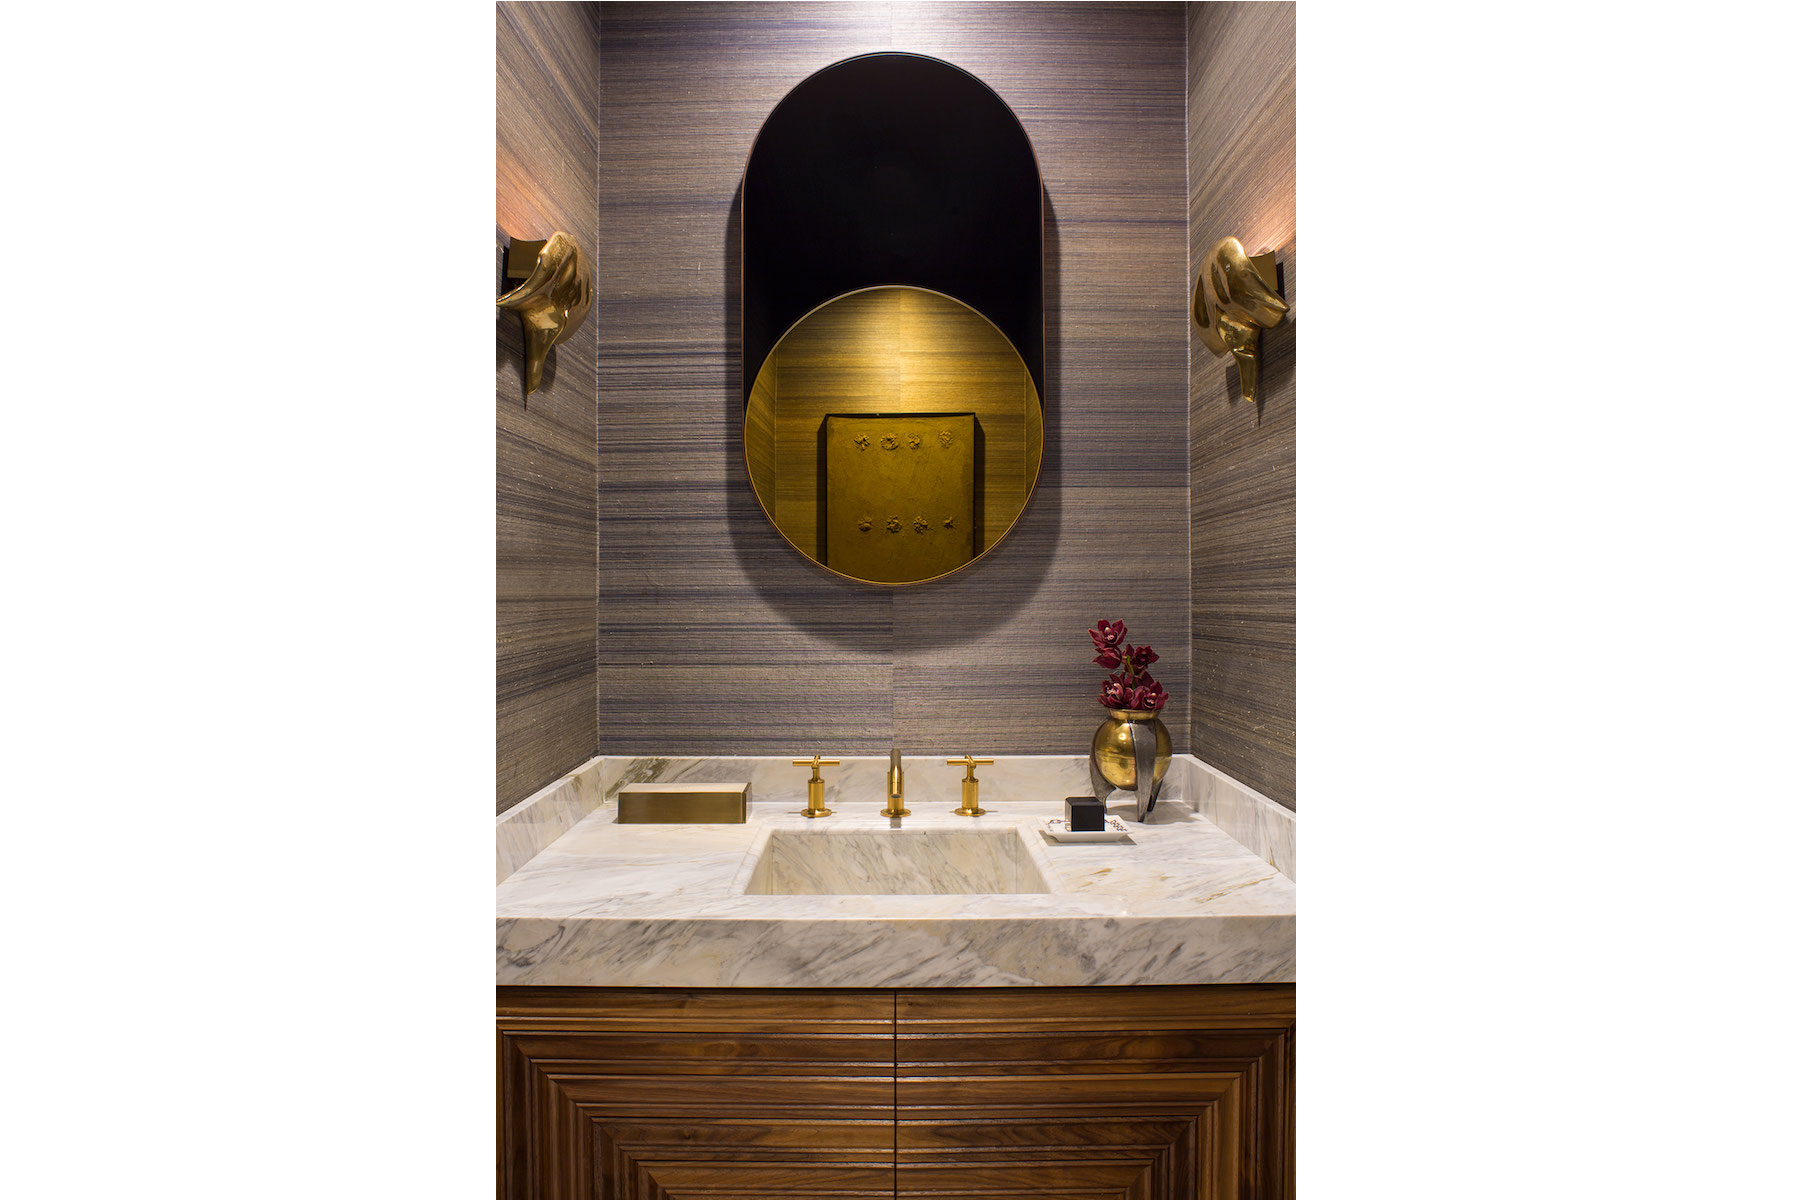 Interior Designer Los Angeles Detailed Wood Vanity Doors Marble Sink Brass Sconces Brass Mirror Powder Room Bathroom Design